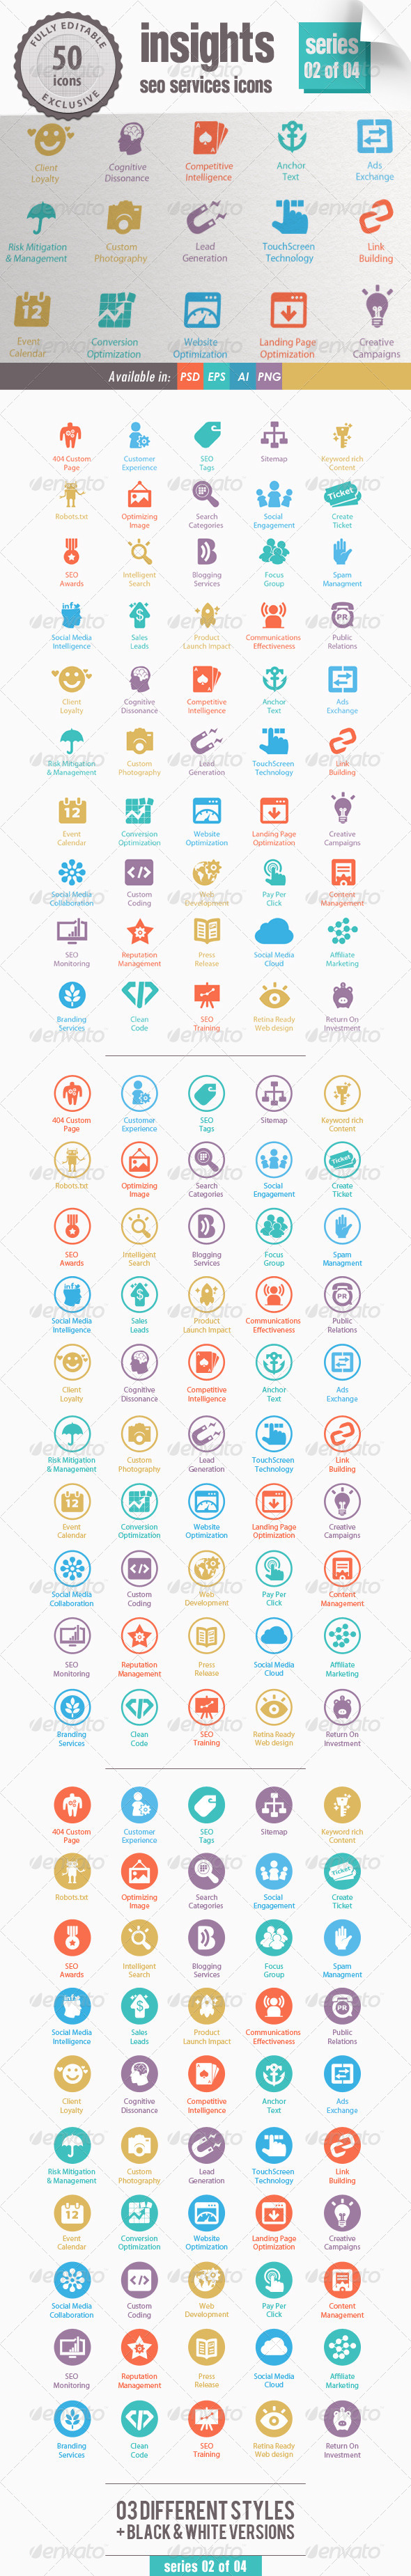 GraphicRiver Insights SEO Services Icons Series 02 of 04 5770675